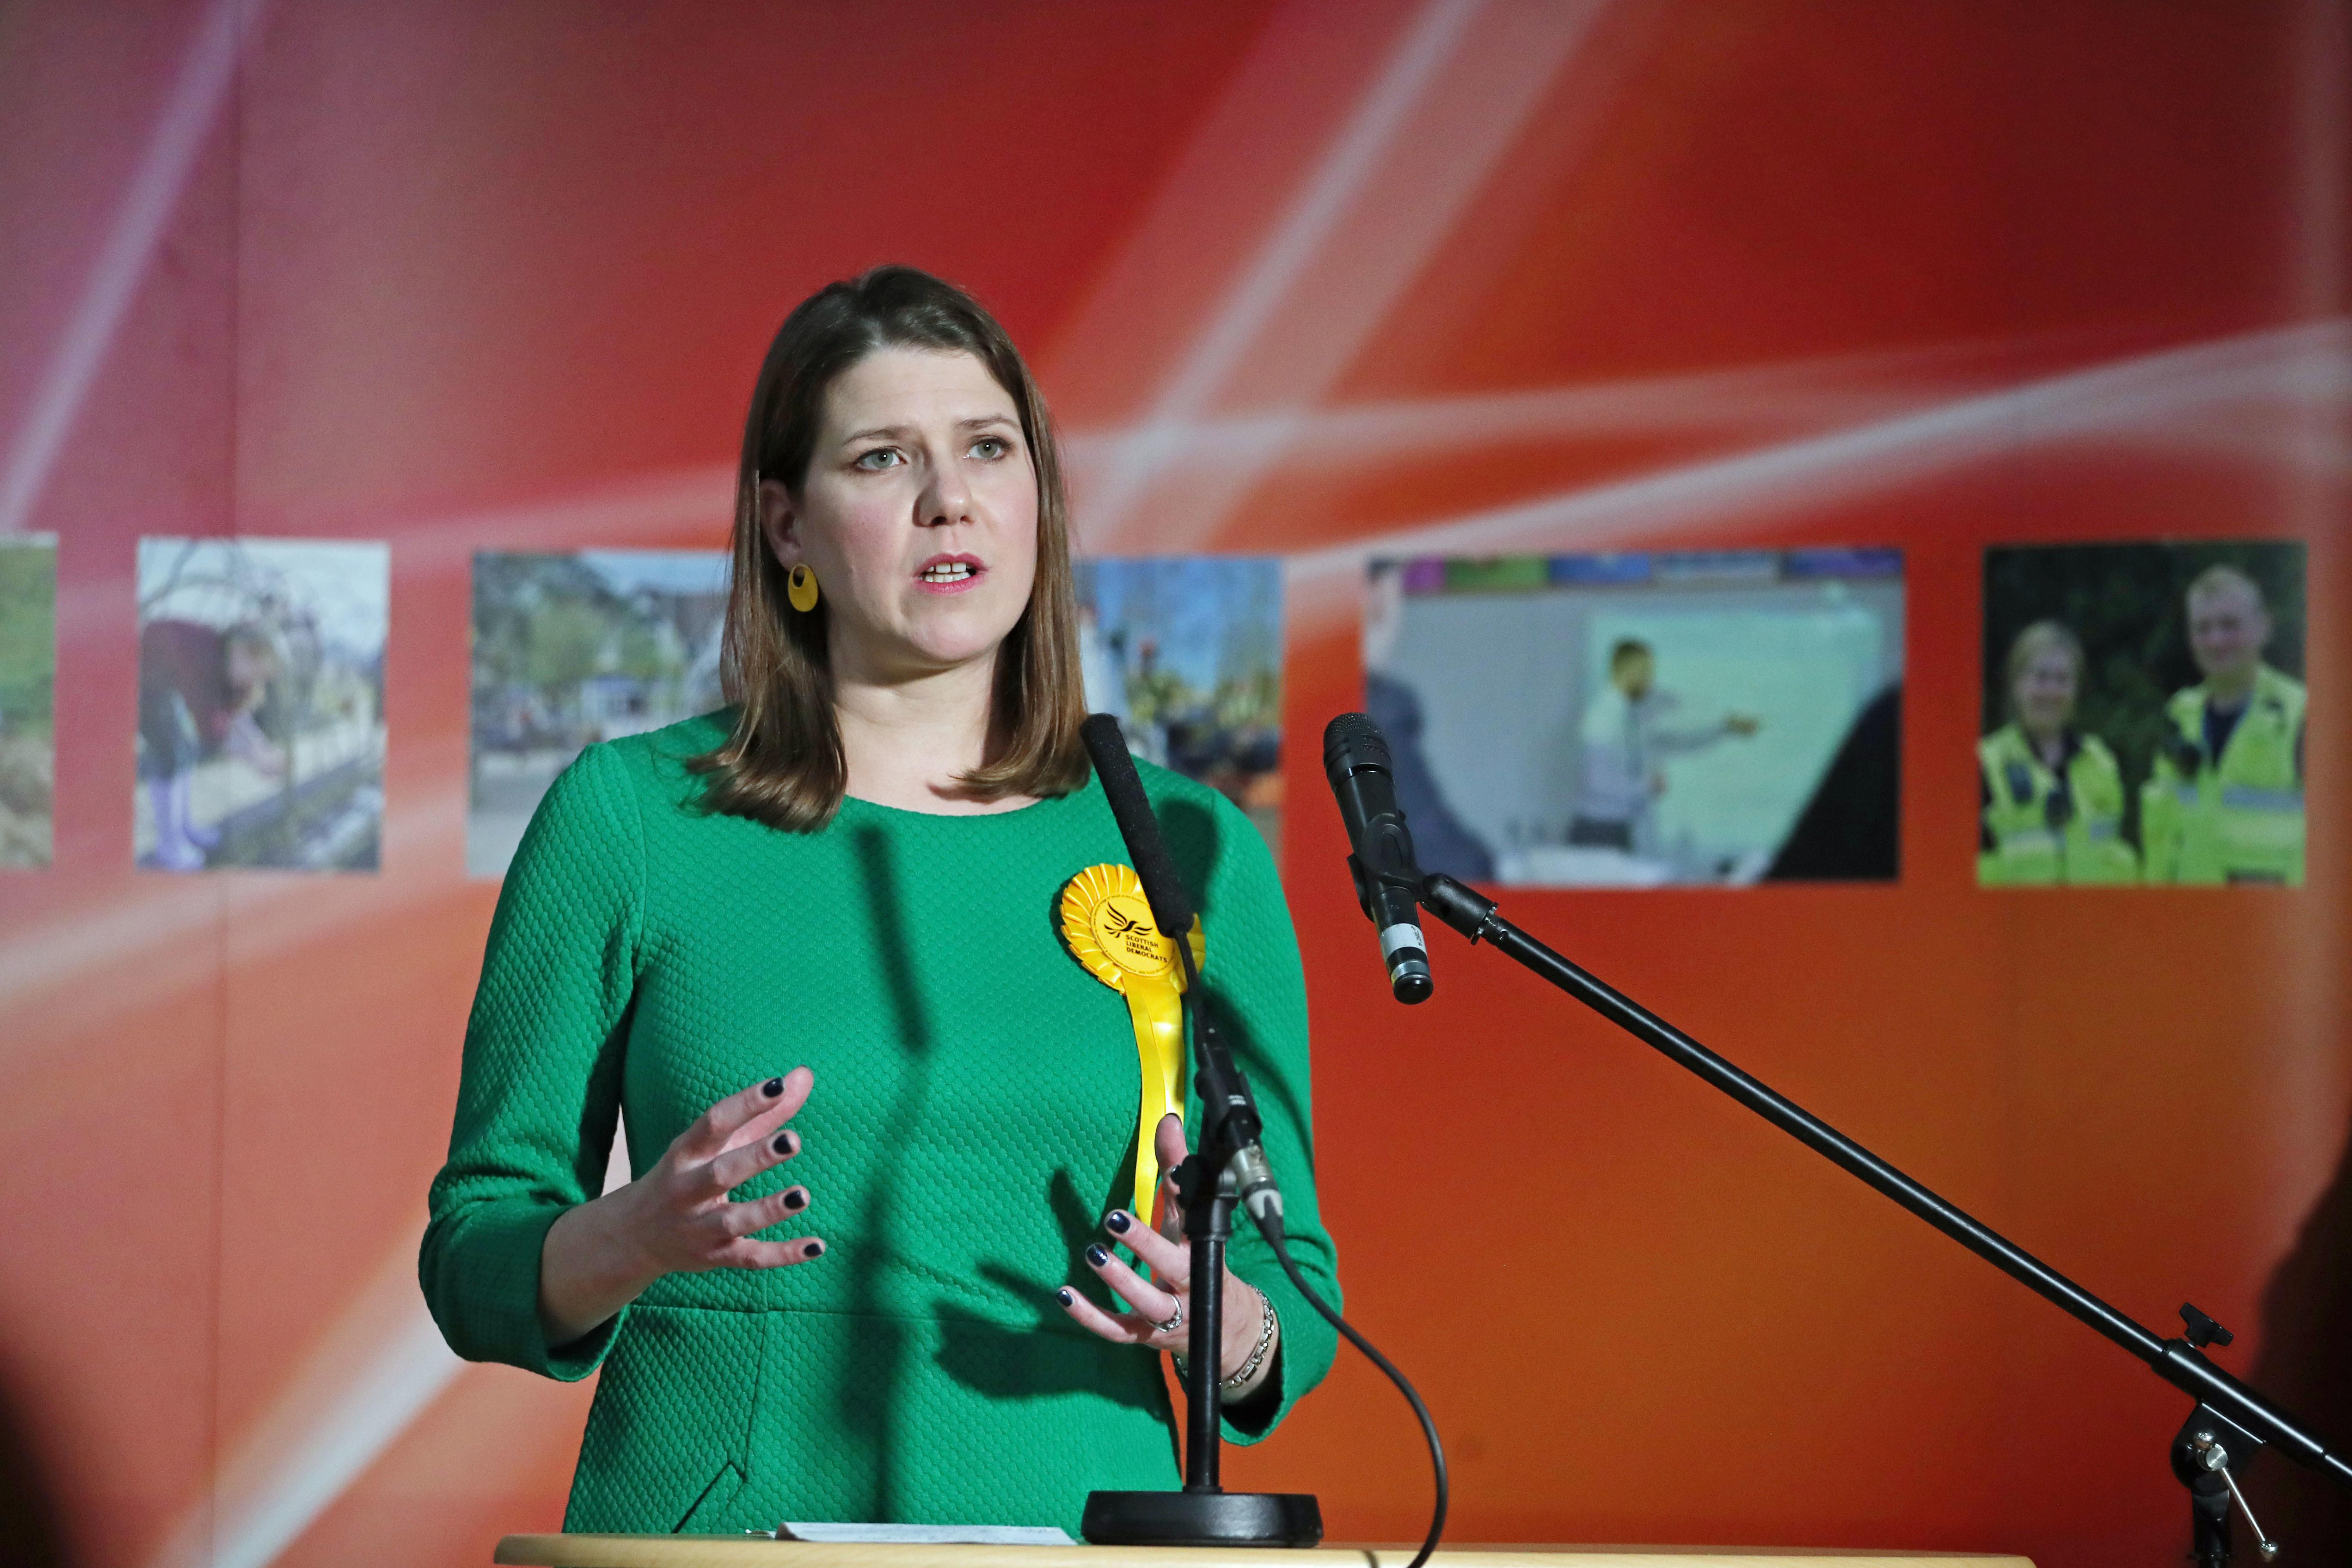 Lib Dem leader Jo Swinson reacts as she loses her East Dumbartonshire constituency, during the count at the Leisuredome, Bishopbriggs.